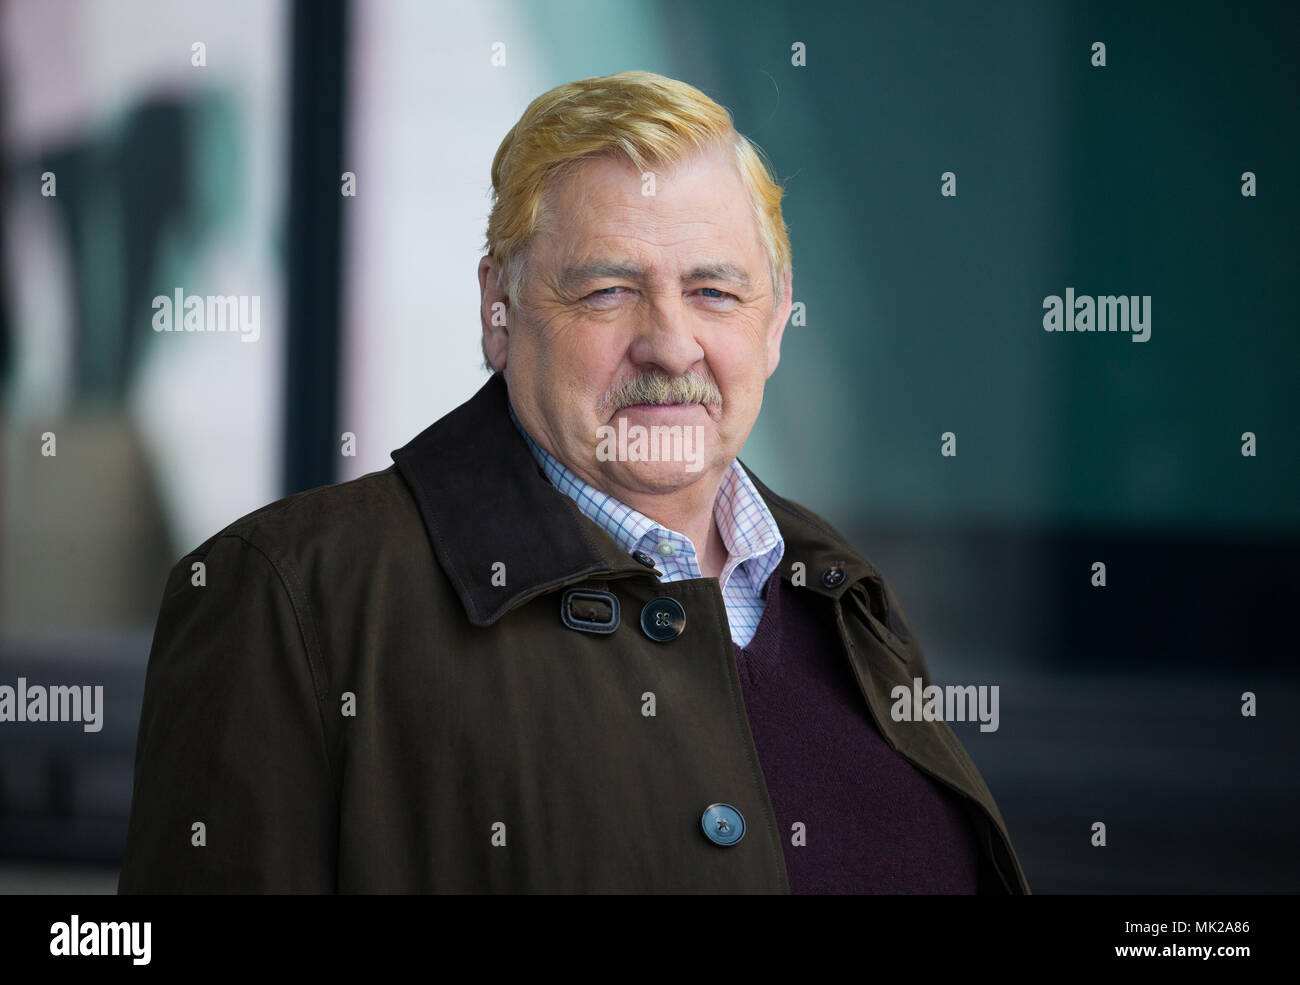 Actor, Peter Wight, also known as Peter Wright, outside the BBC television Studios filming 'I'm Alan Partridge'. - Stock Image